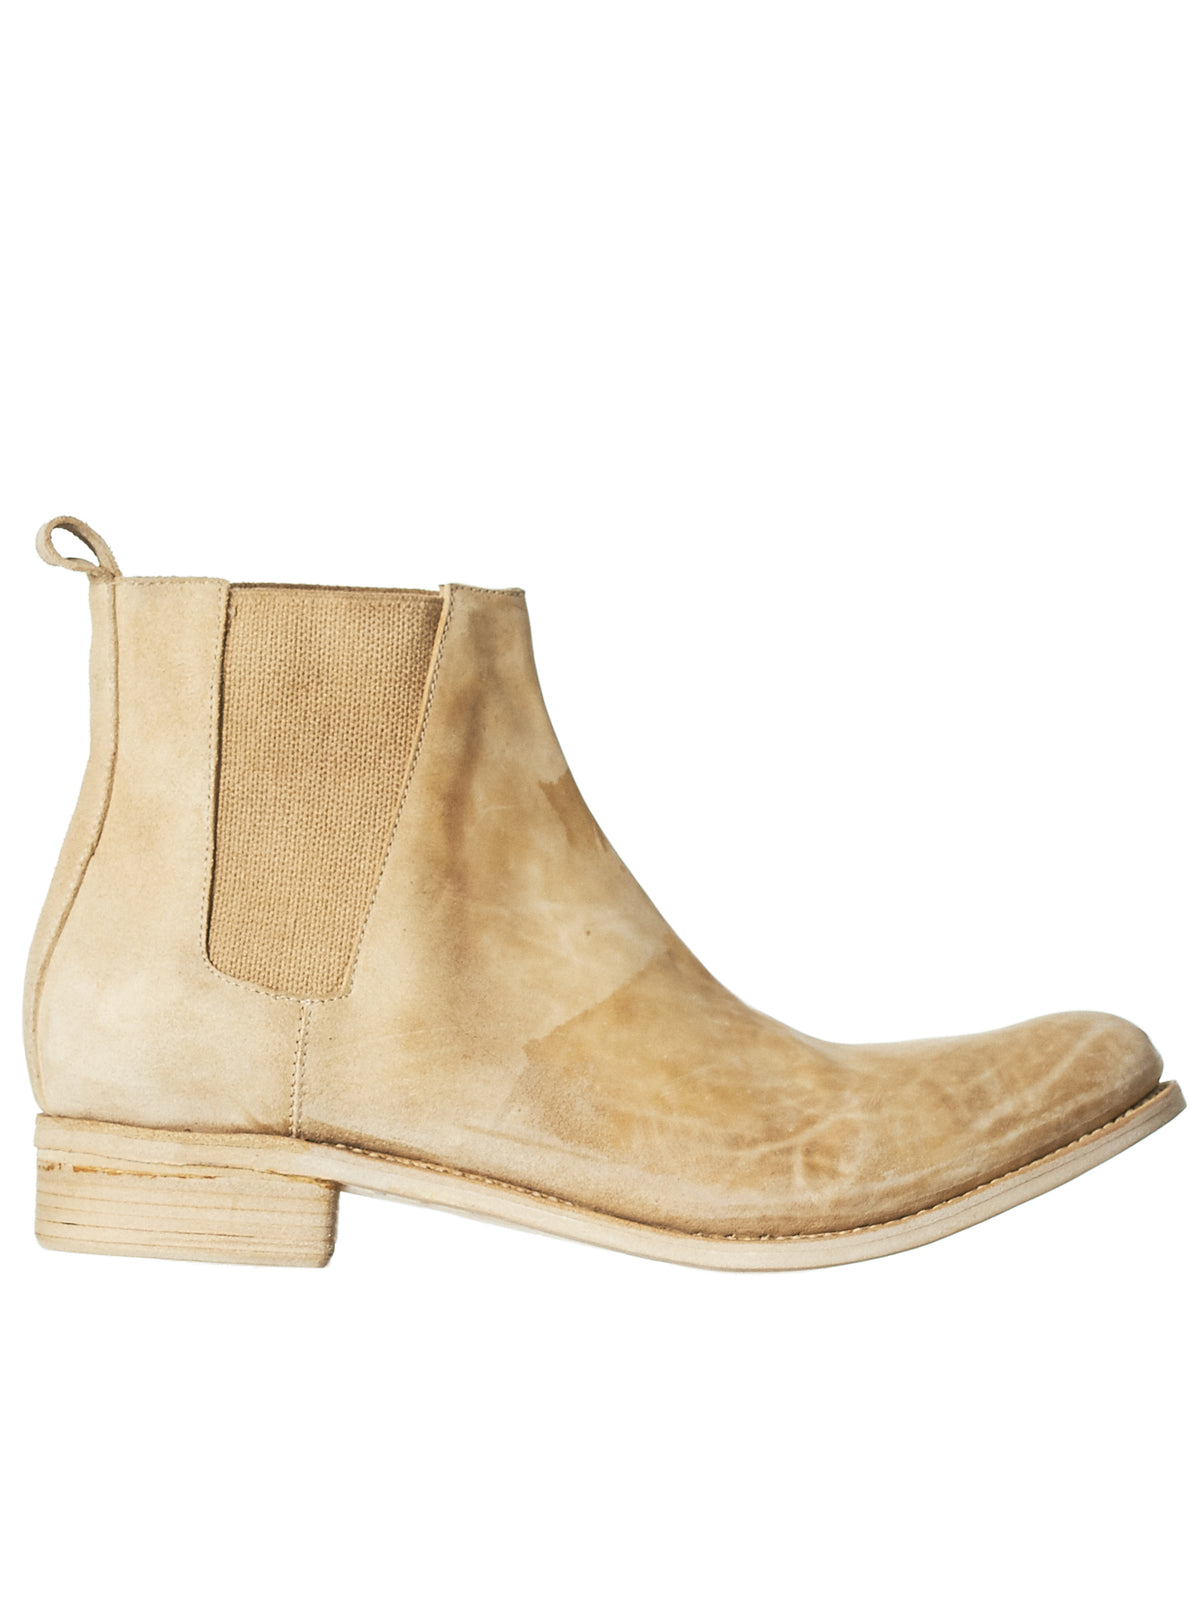 Cordovan Chelsea Boot (042-CORDOVAN-LIGHT-BEIGE)